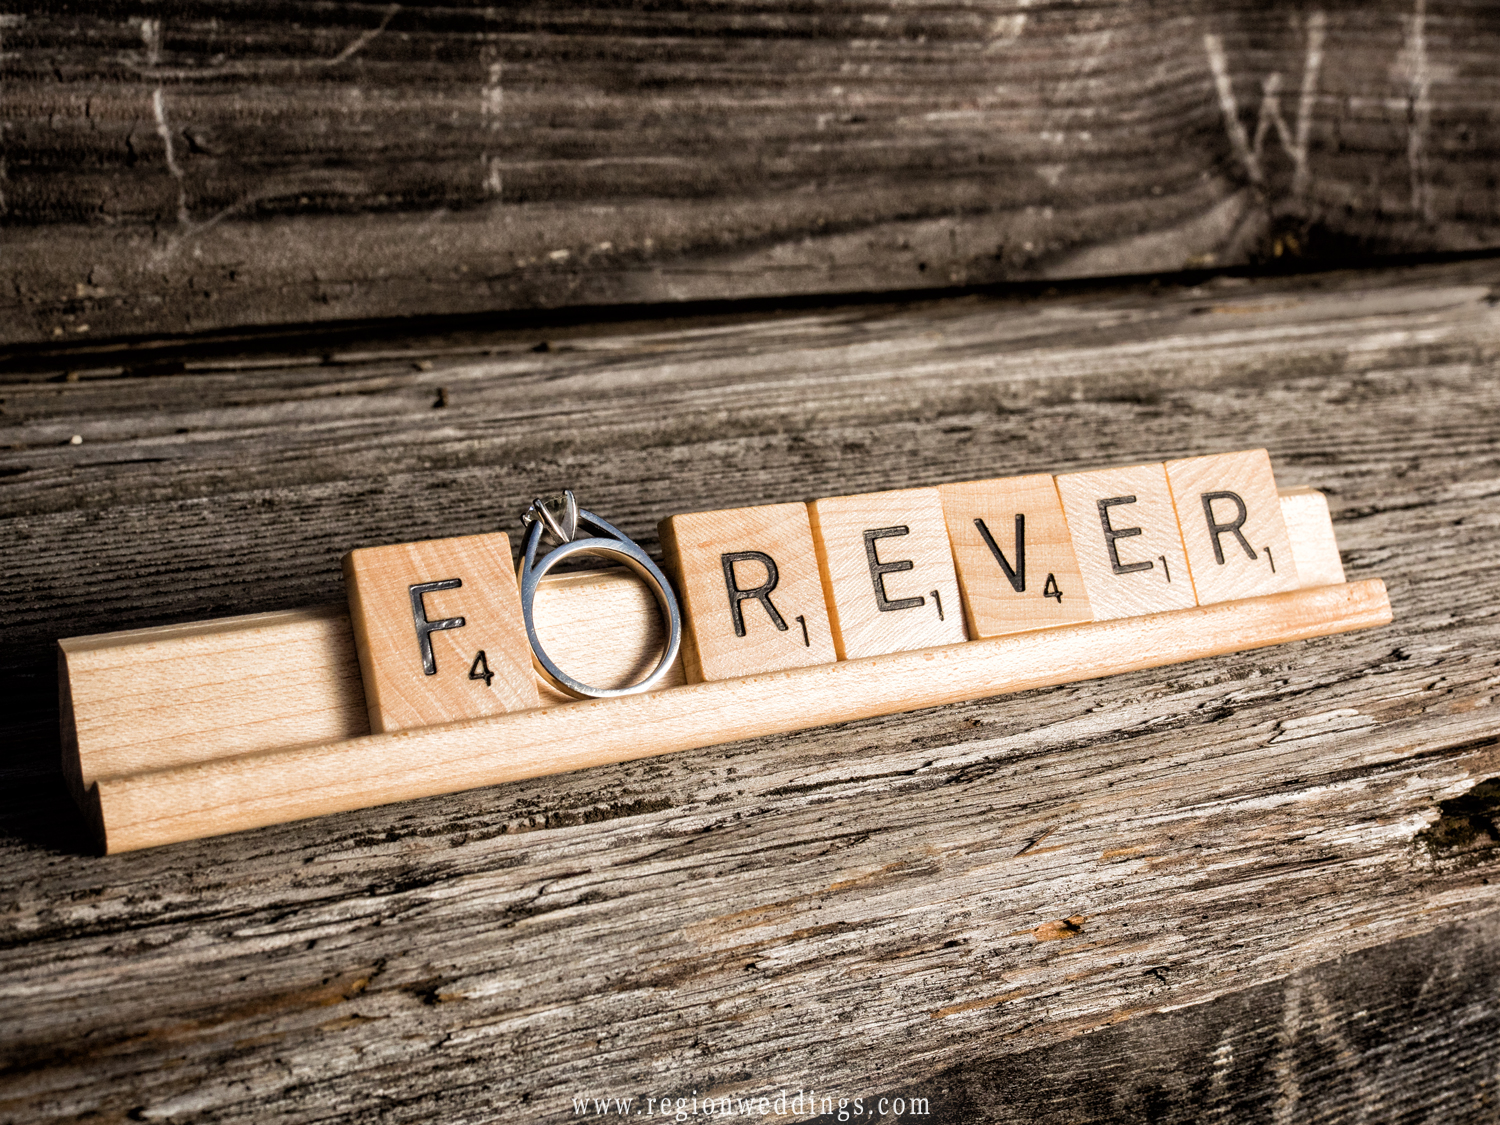 Scrabble letter spell 'forever' with the engagement ring as the letter 'o'.